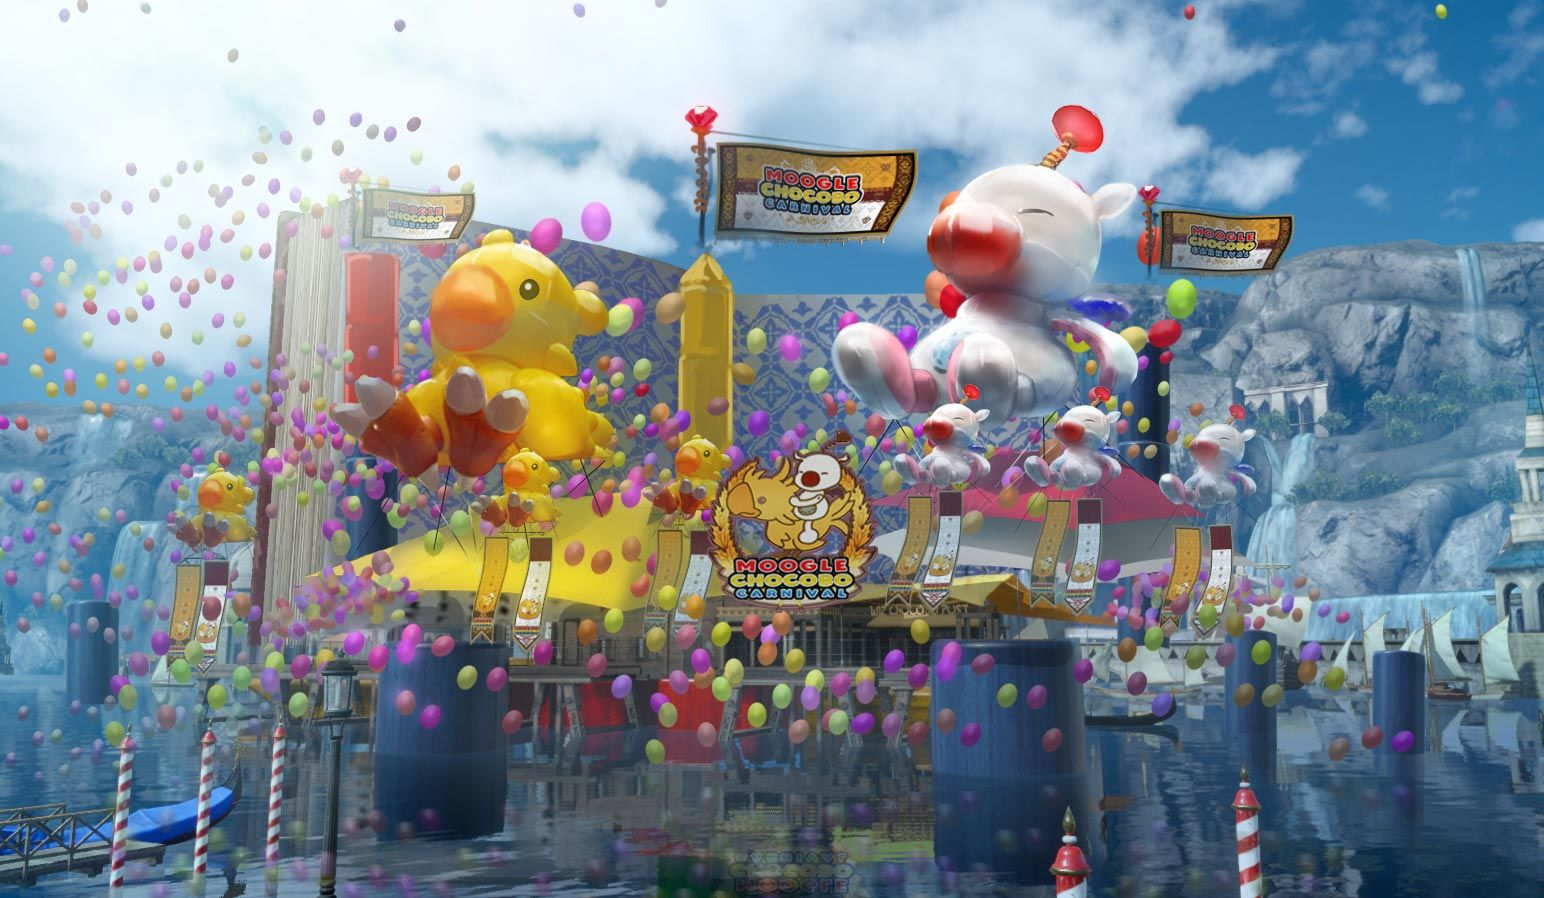 Final Fantasy 15 Moogle Chocobo Carnival